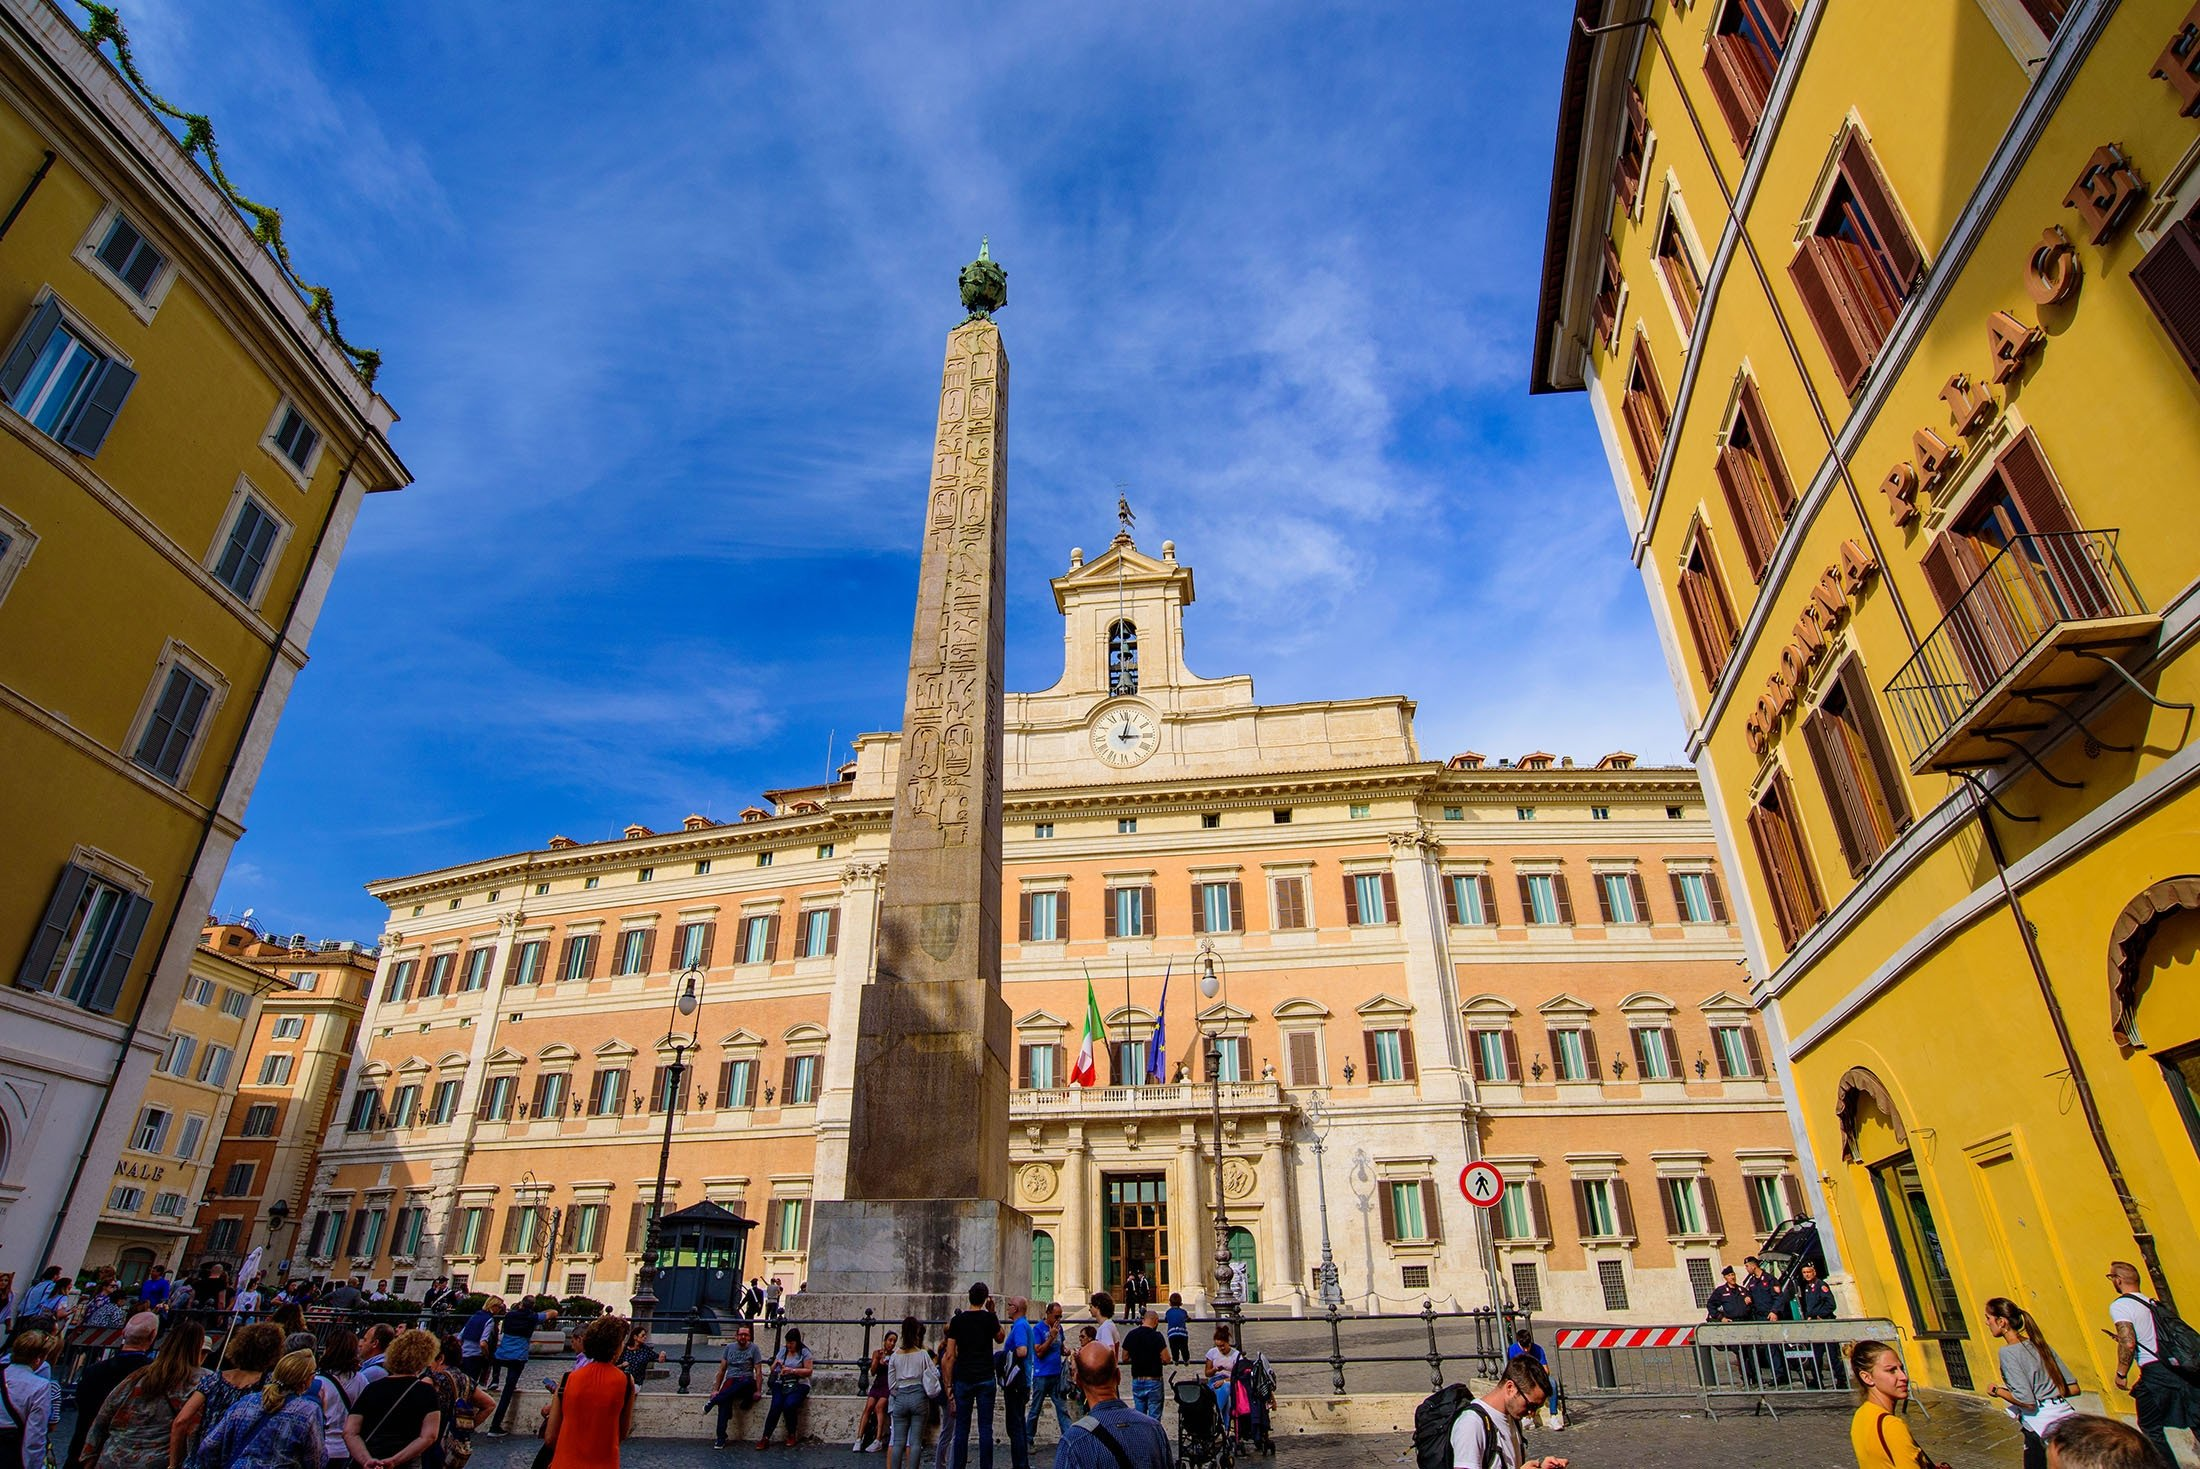 The Obelisk ofMontecitorio, an ancient Egyptian obelisk of Psamtik II from Heliopolis, can be seen in Rome, Italy, Oct. 13, 2019. (Shutterstock Photo)